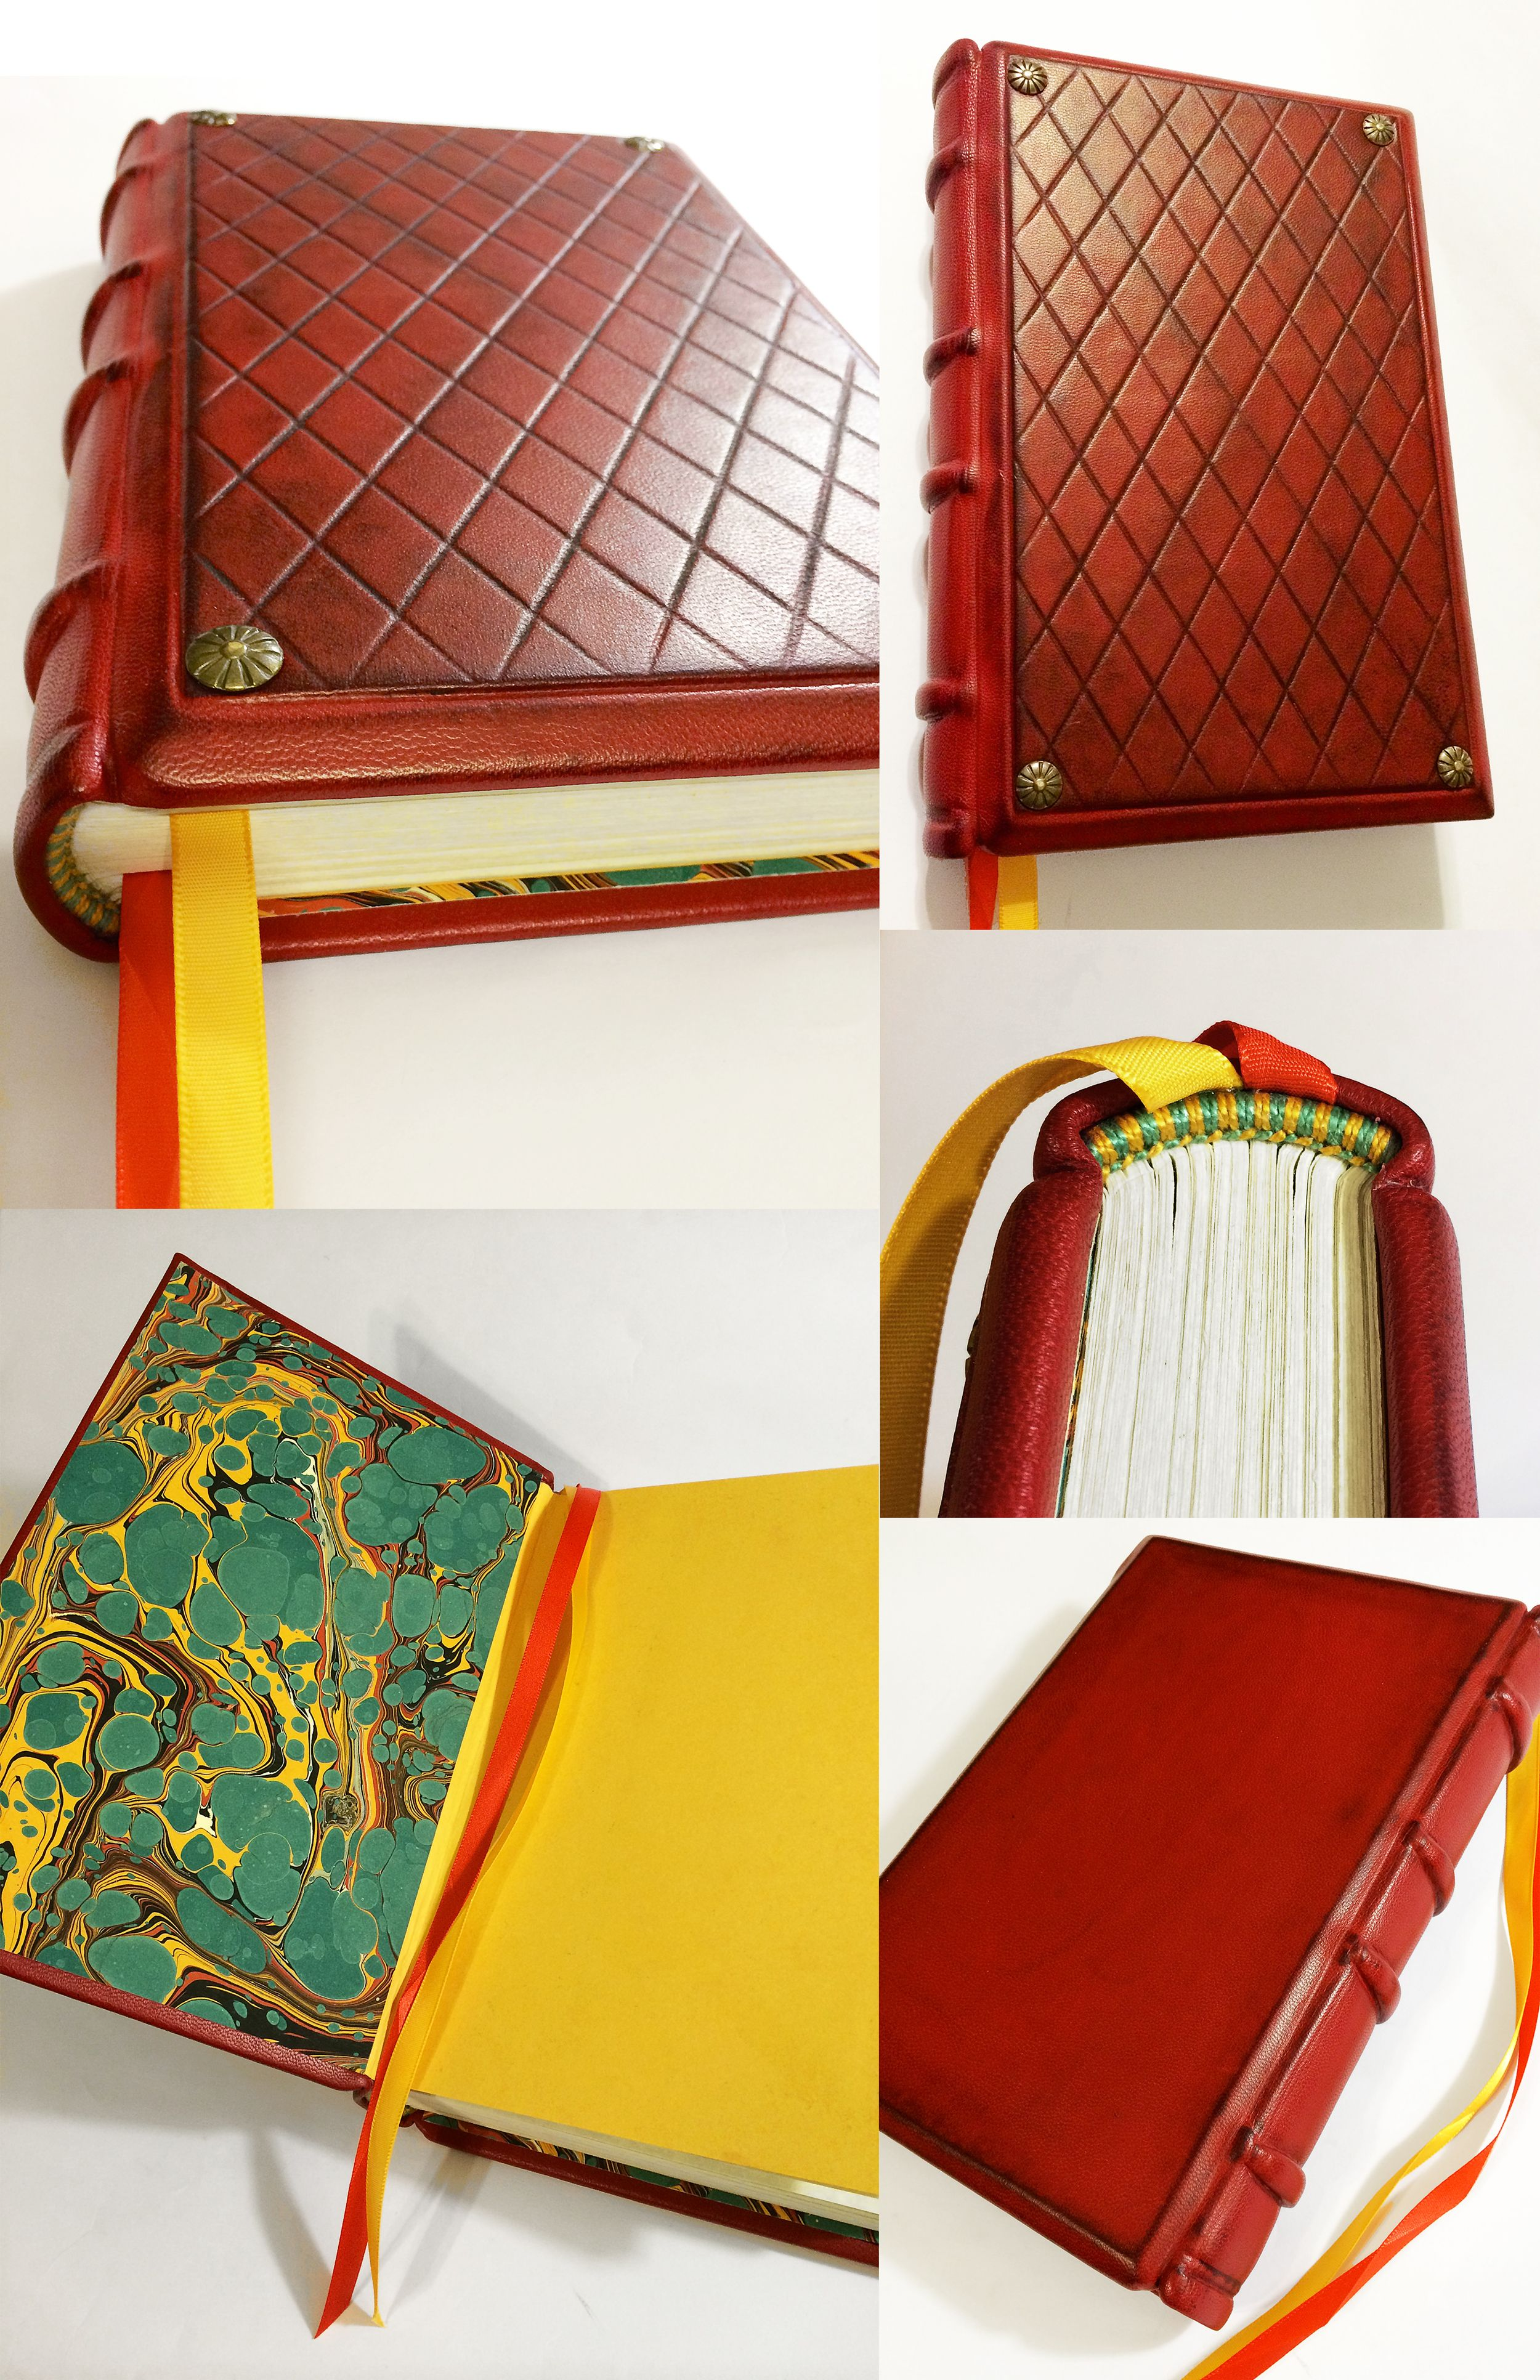 THE RED DIAMOND by BC Bookbinding